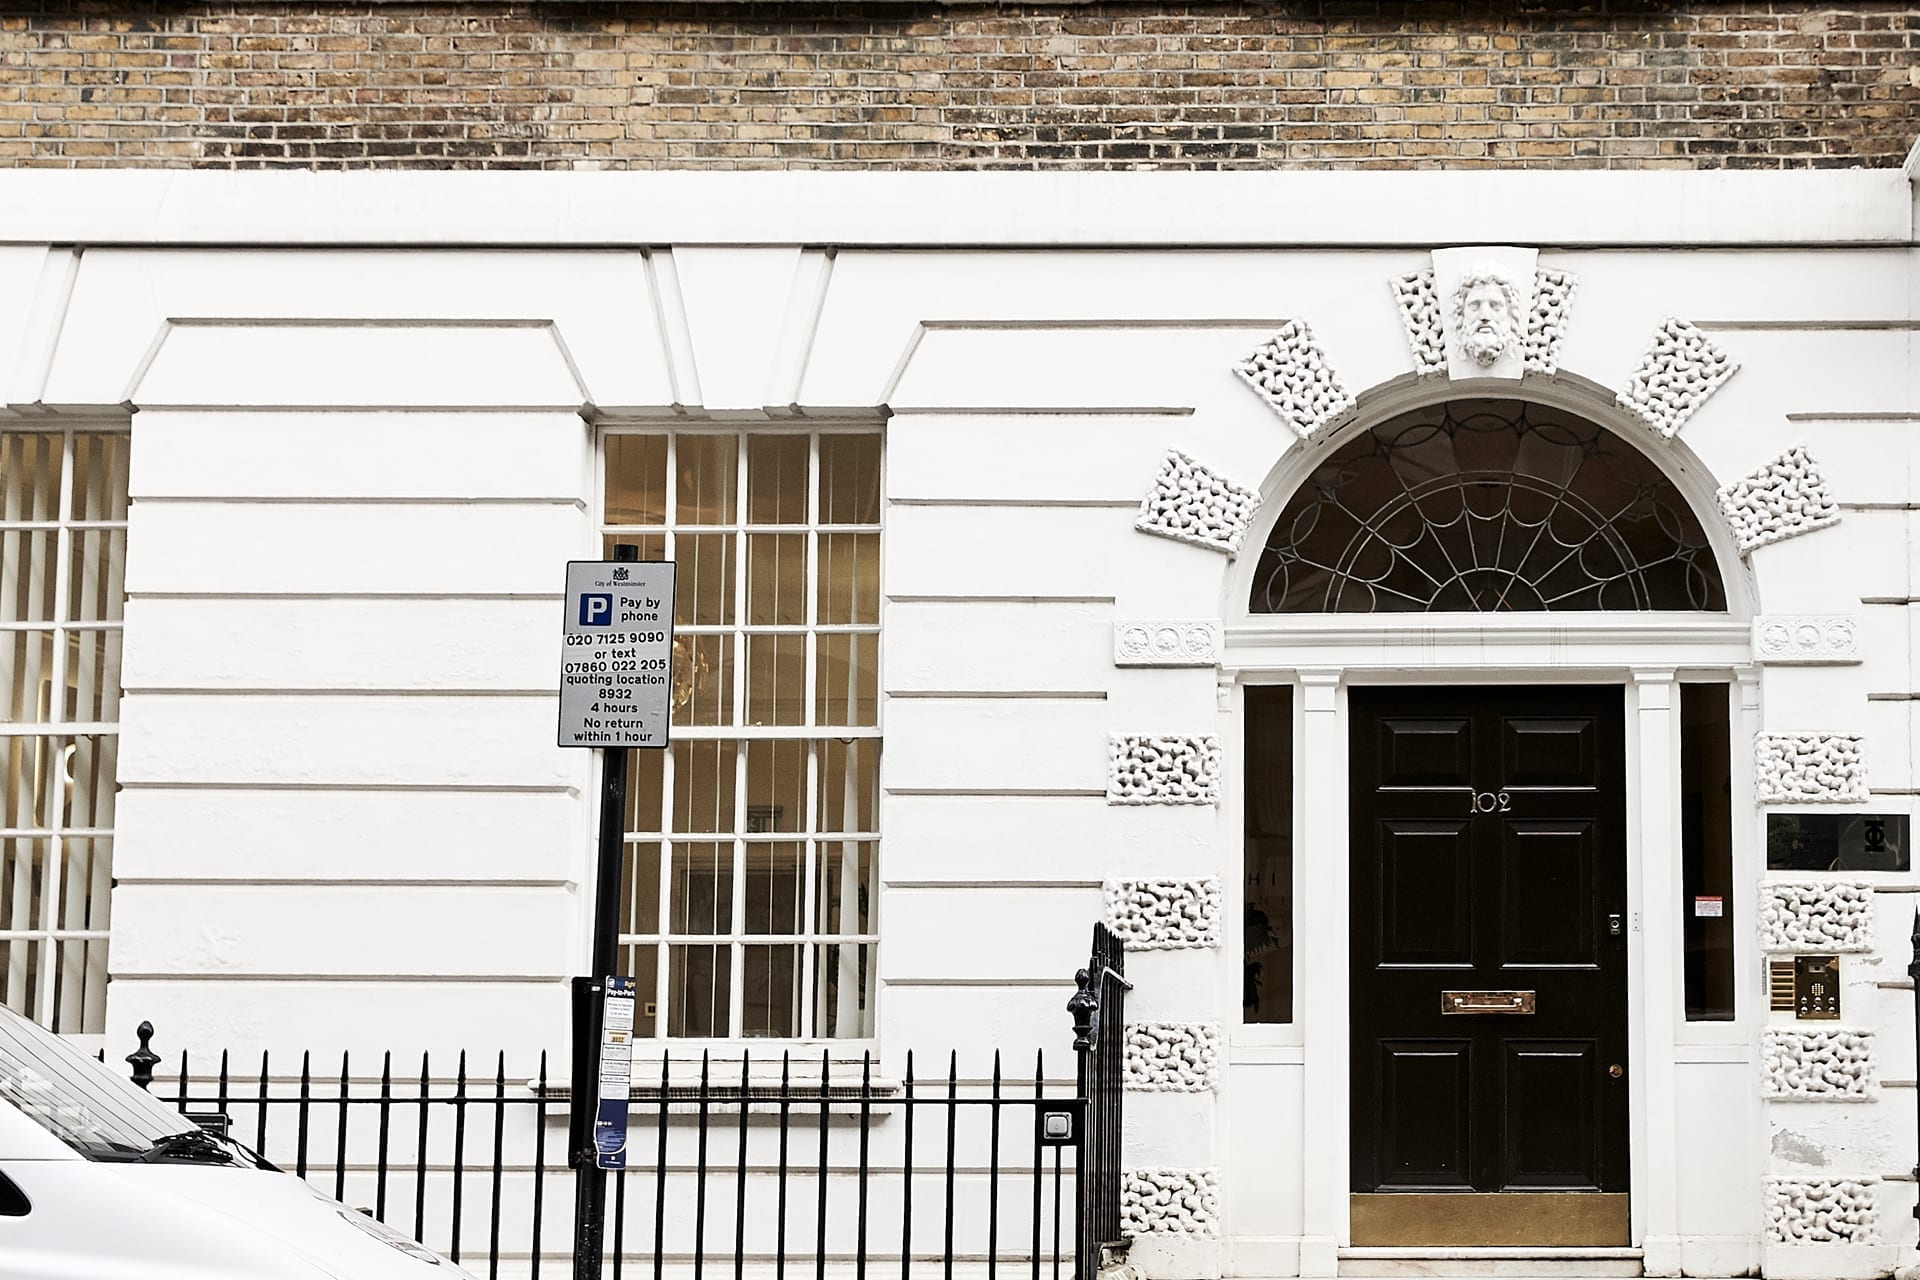 Regulation-Of-Cosmetic-Surgery-PHI-Clinic-London. 1920 x 1280